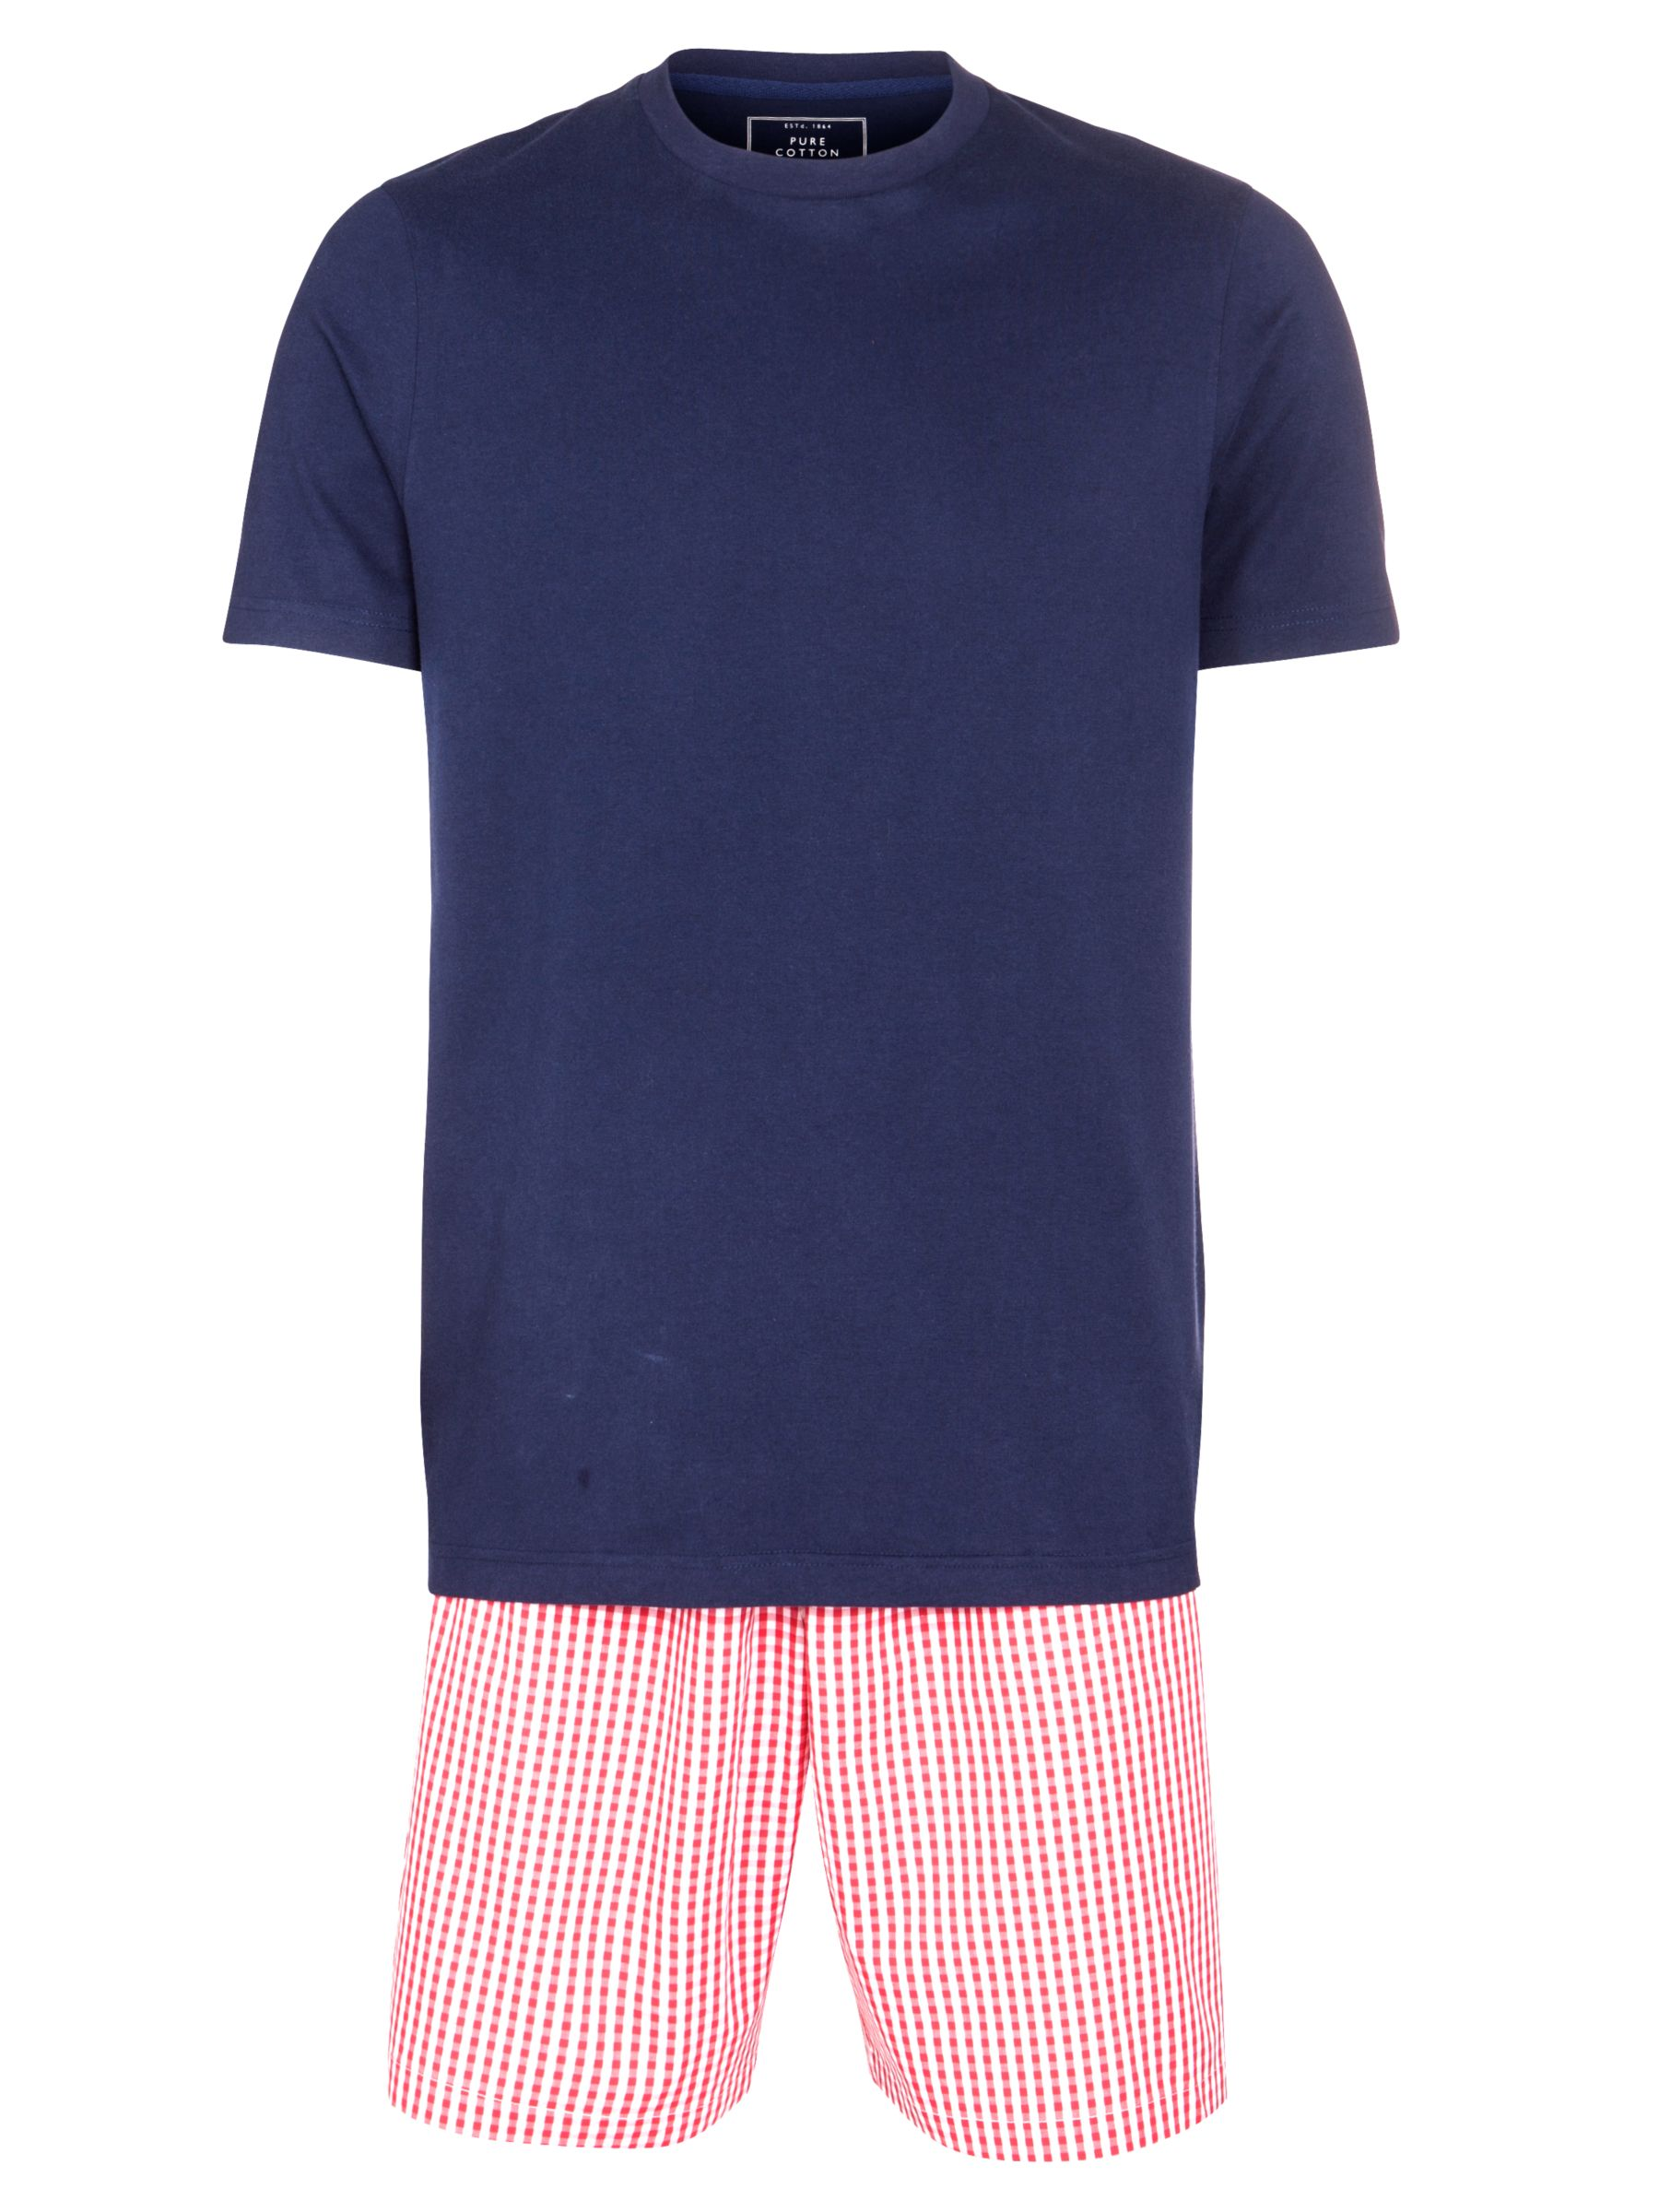 John Lewis Cotton T-Shirt and Gingham Short Lounge Set, Navy/Red